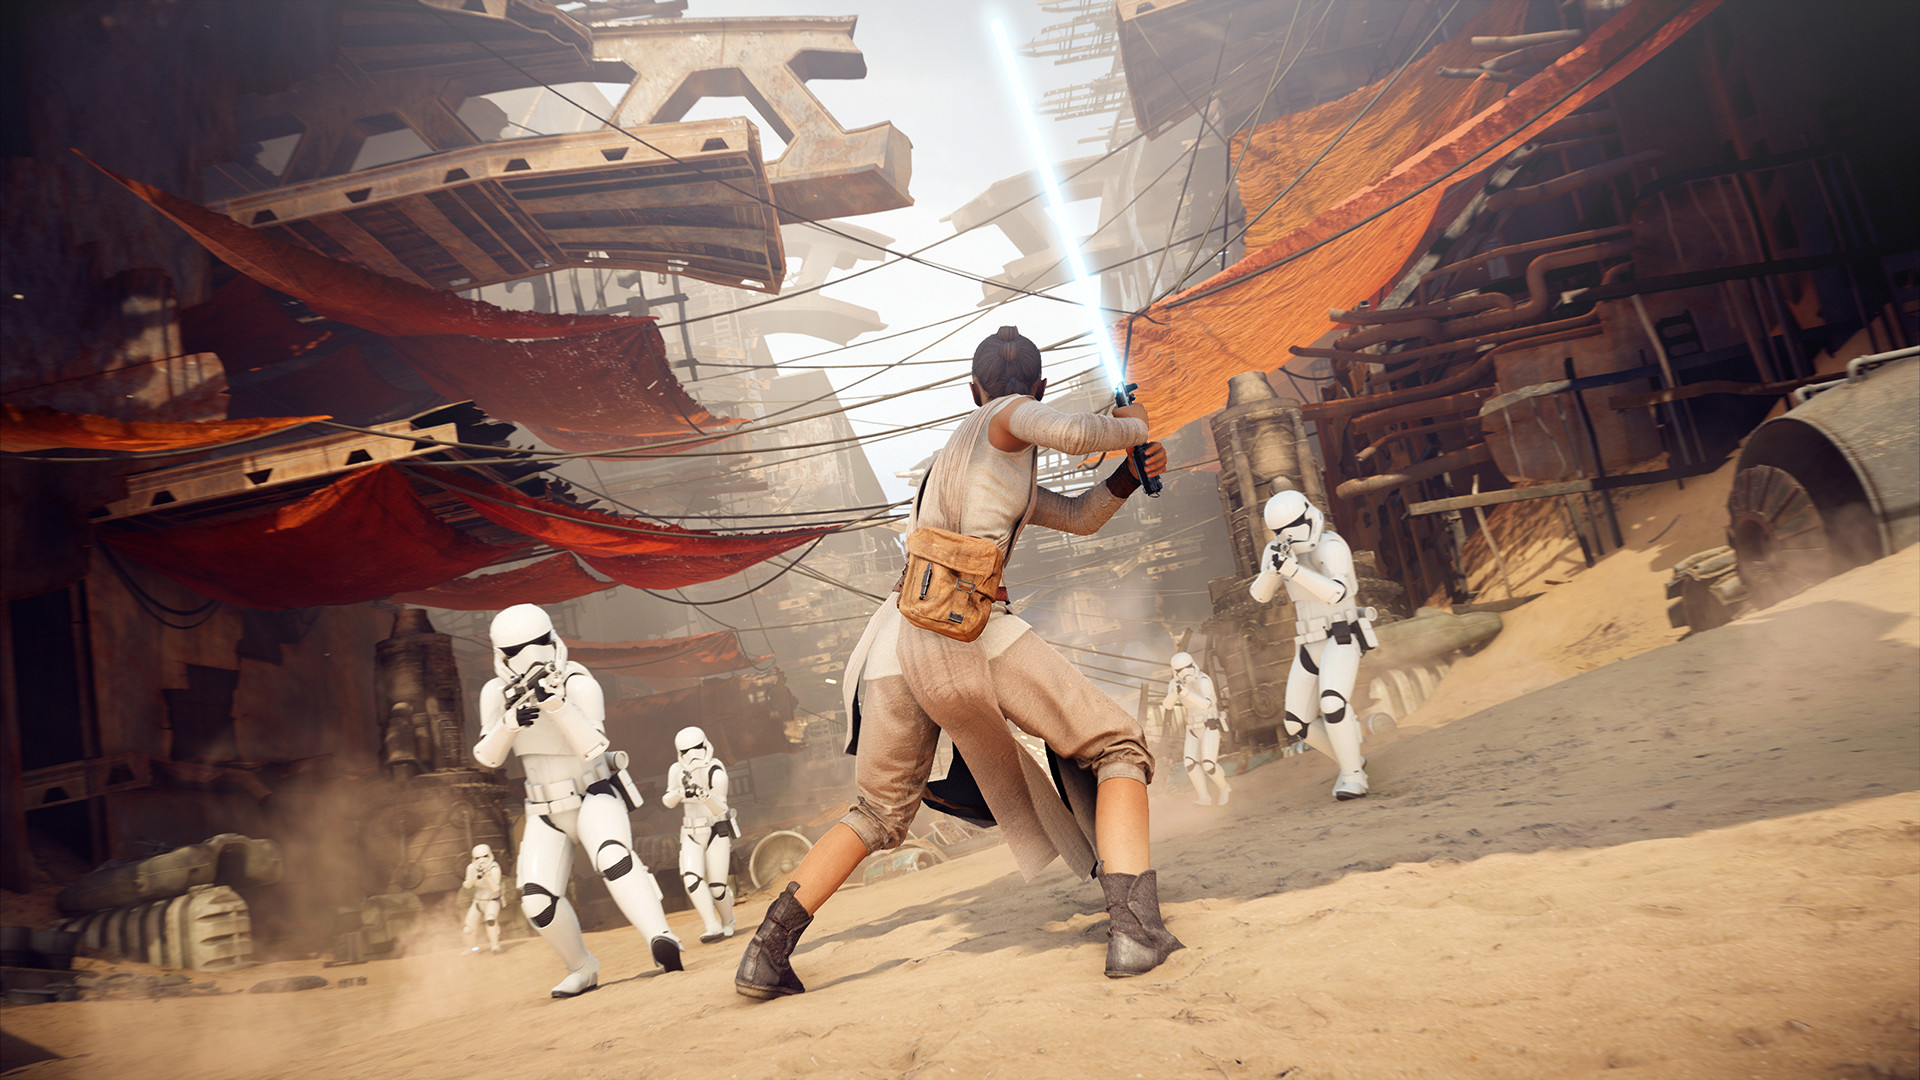 Rey holds her lightsaber in a defensive position as Stormtroopers run toward her